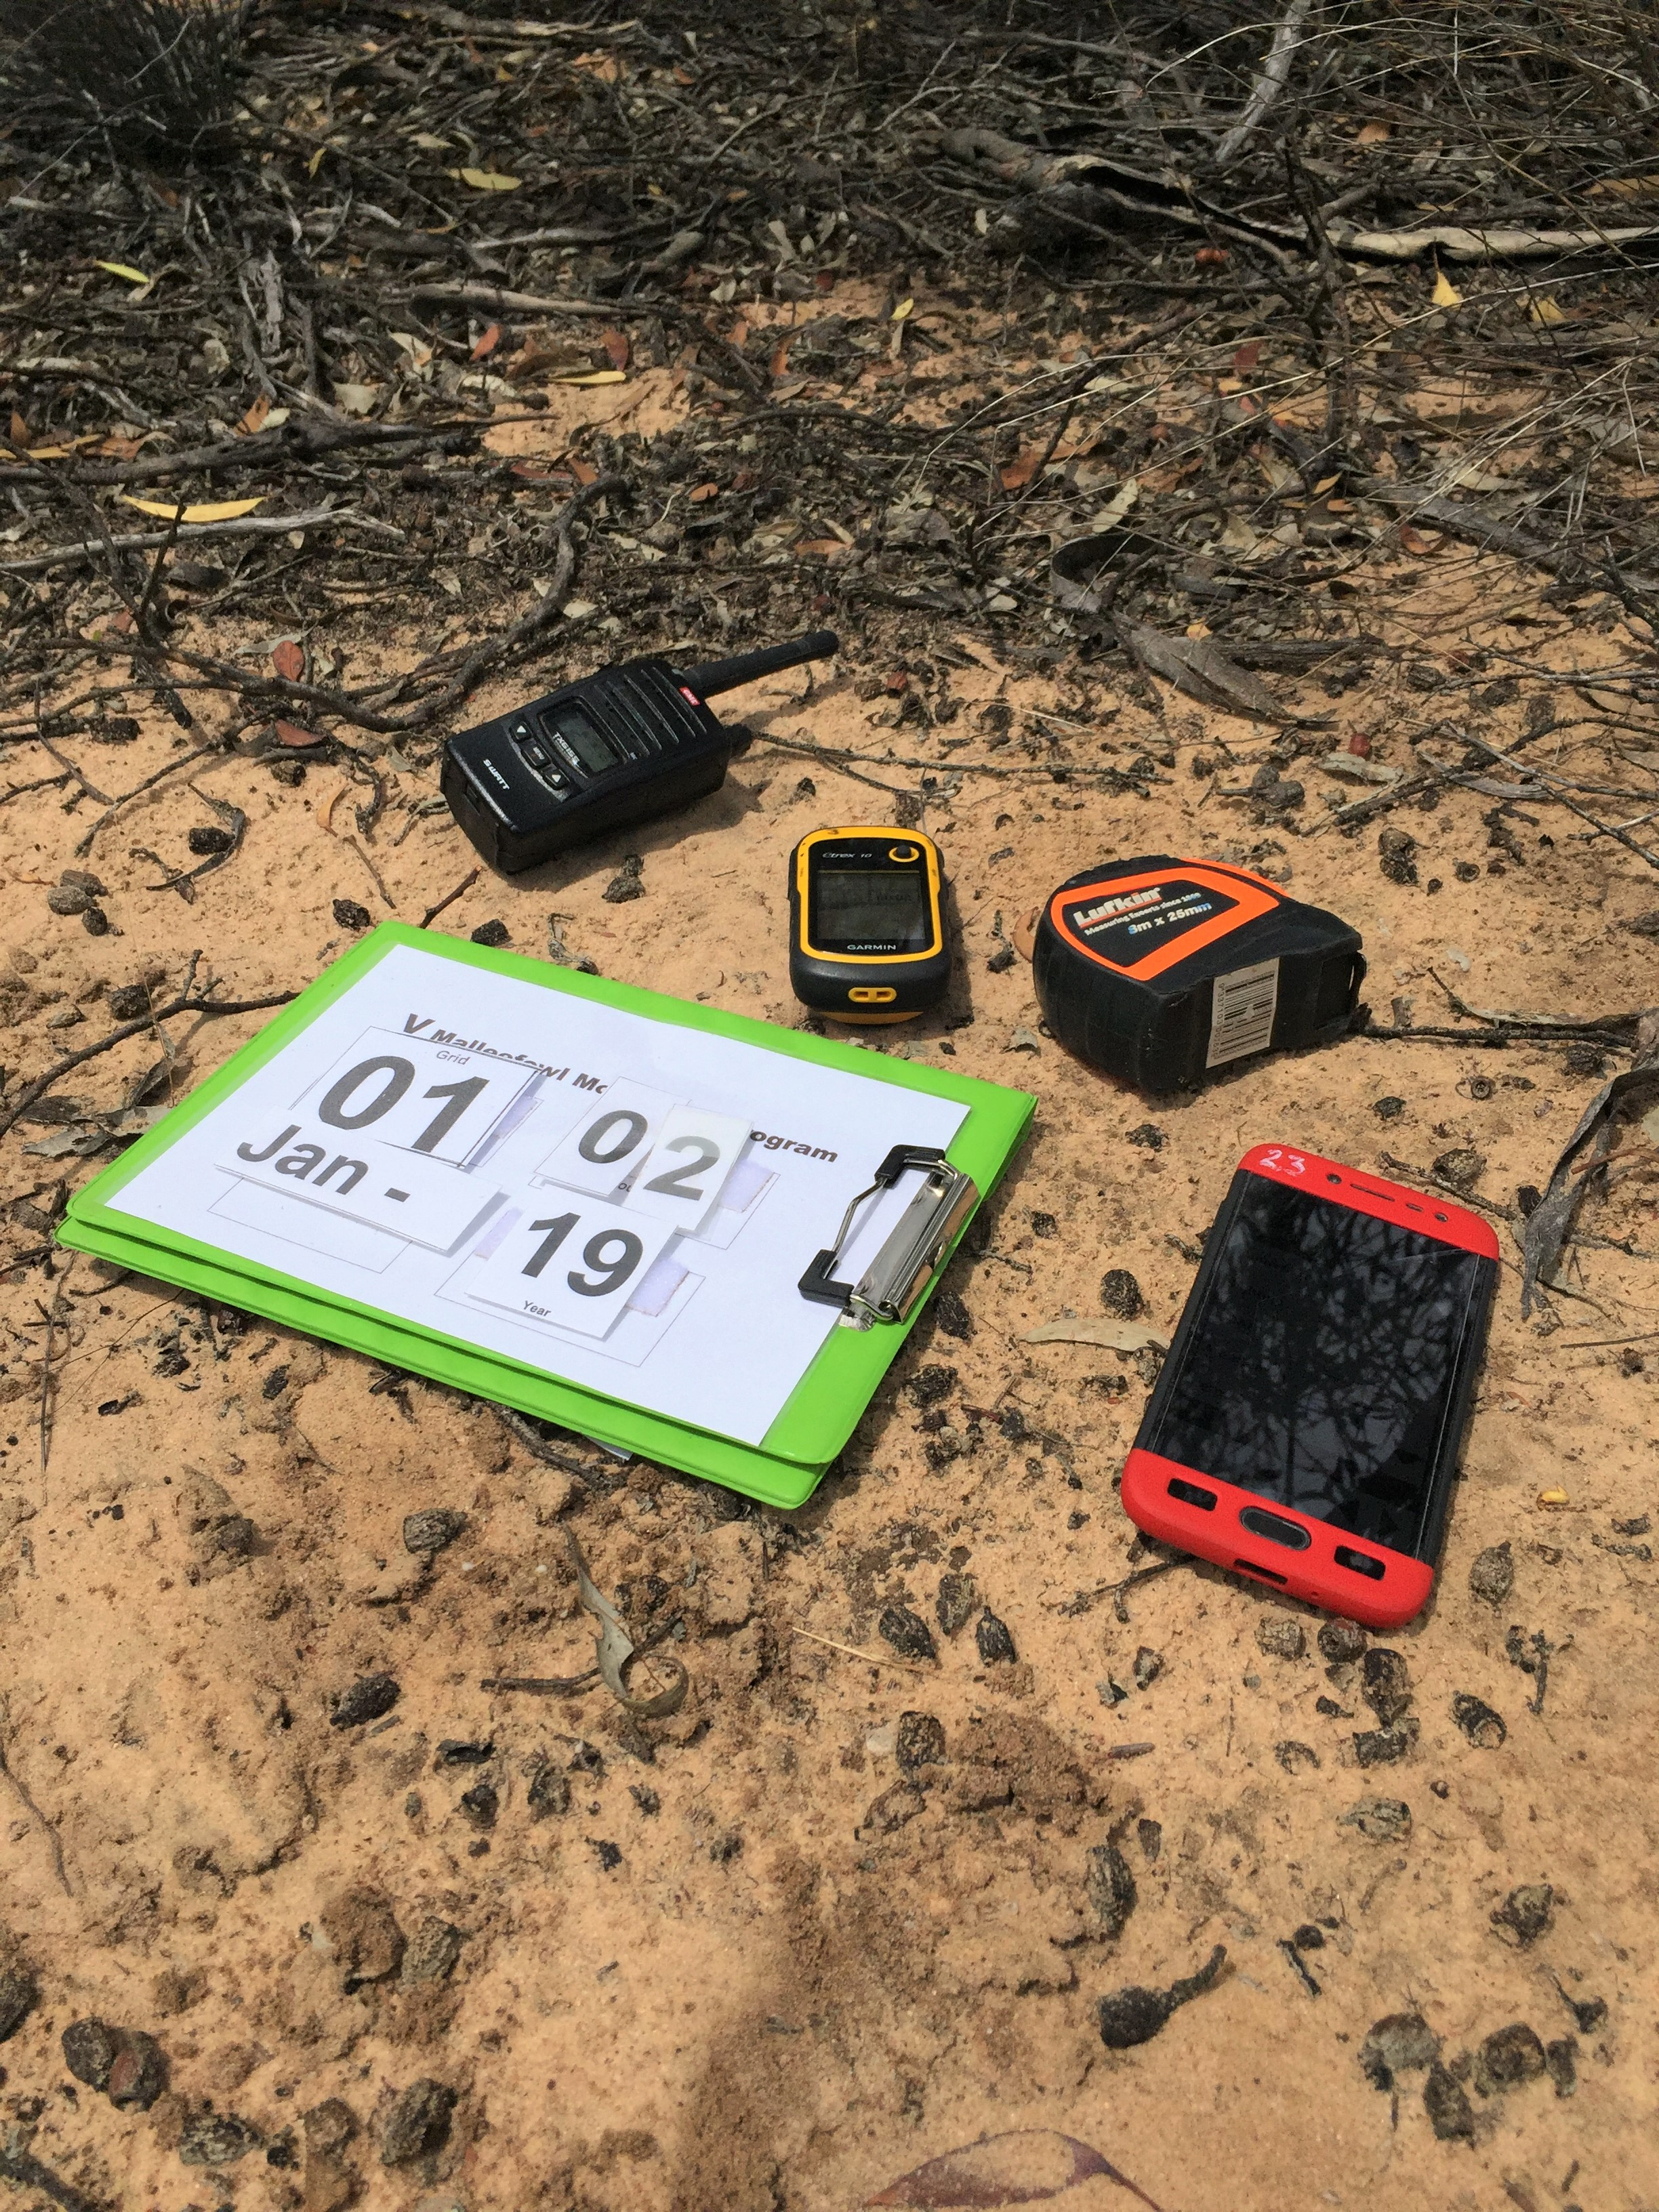 No datasheets here! The modern toolkit for these citizen scientists includes a GPS and an android phone with a customised app called CyberTracker. It makes monitoring a breeze!